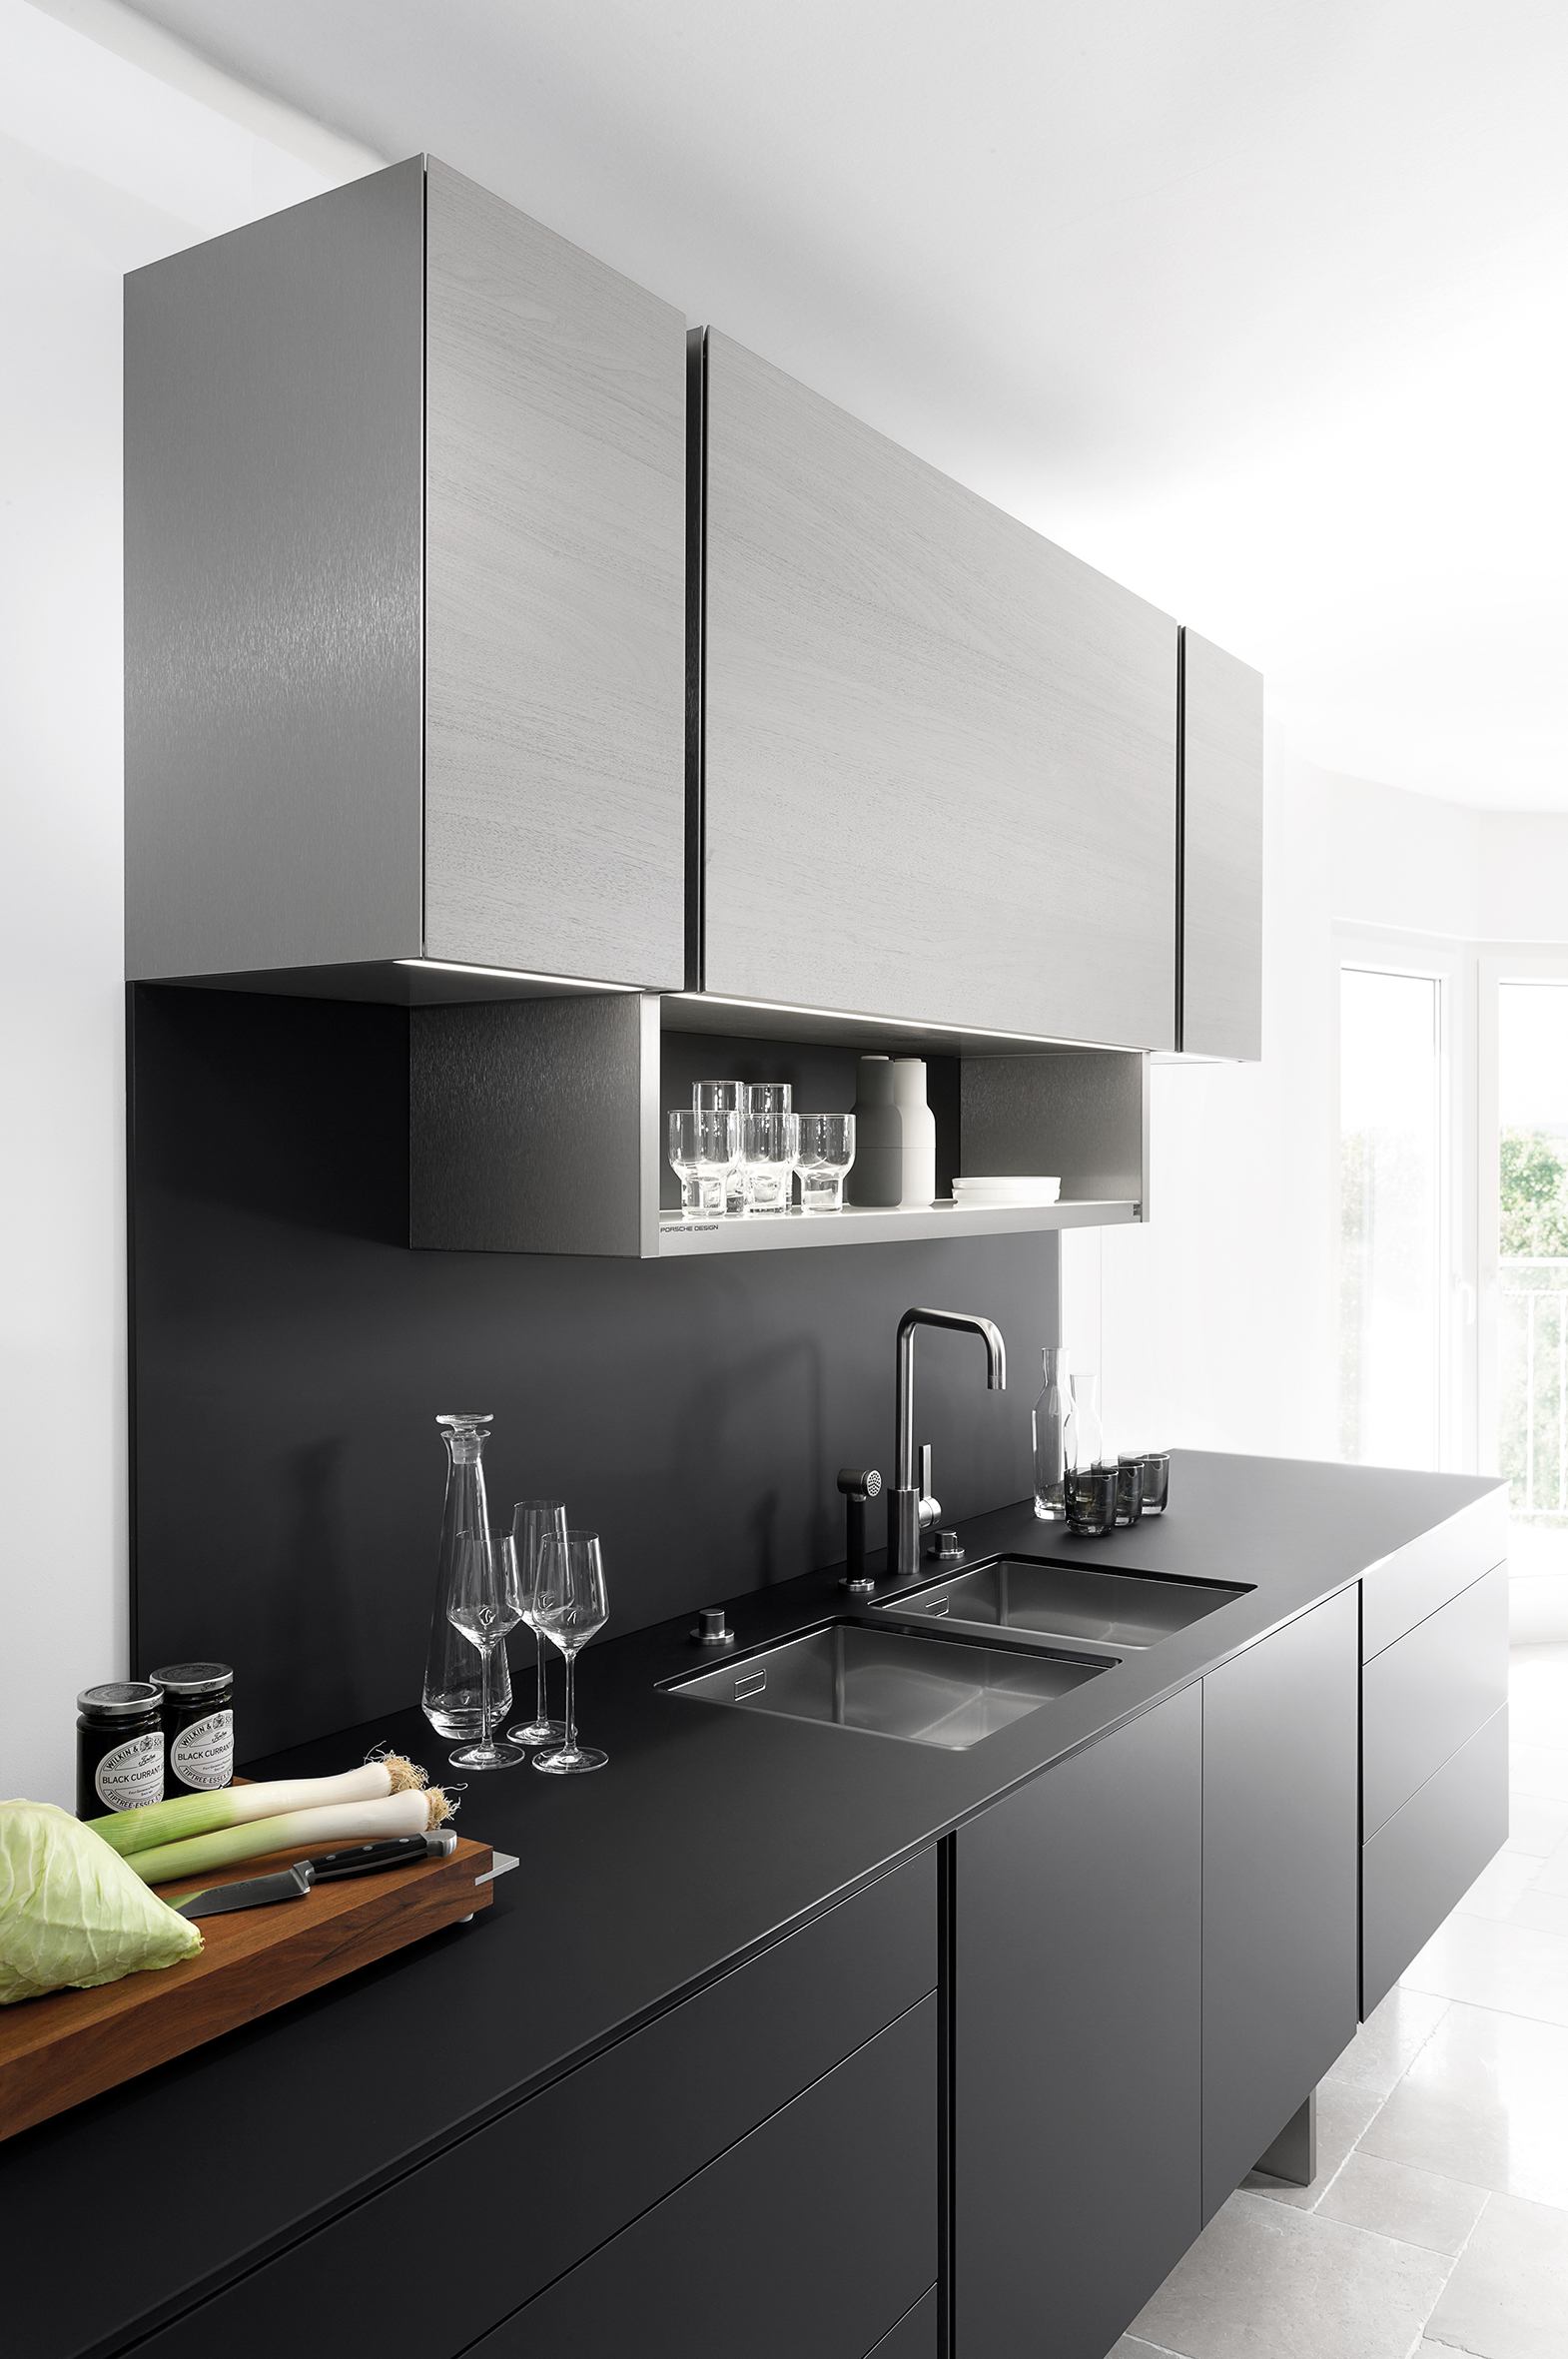 porsche keuken wint red dot award 2015 voorlichtingsburo wonen. Black Bedroom Furniture Sets. Home Design Ideas